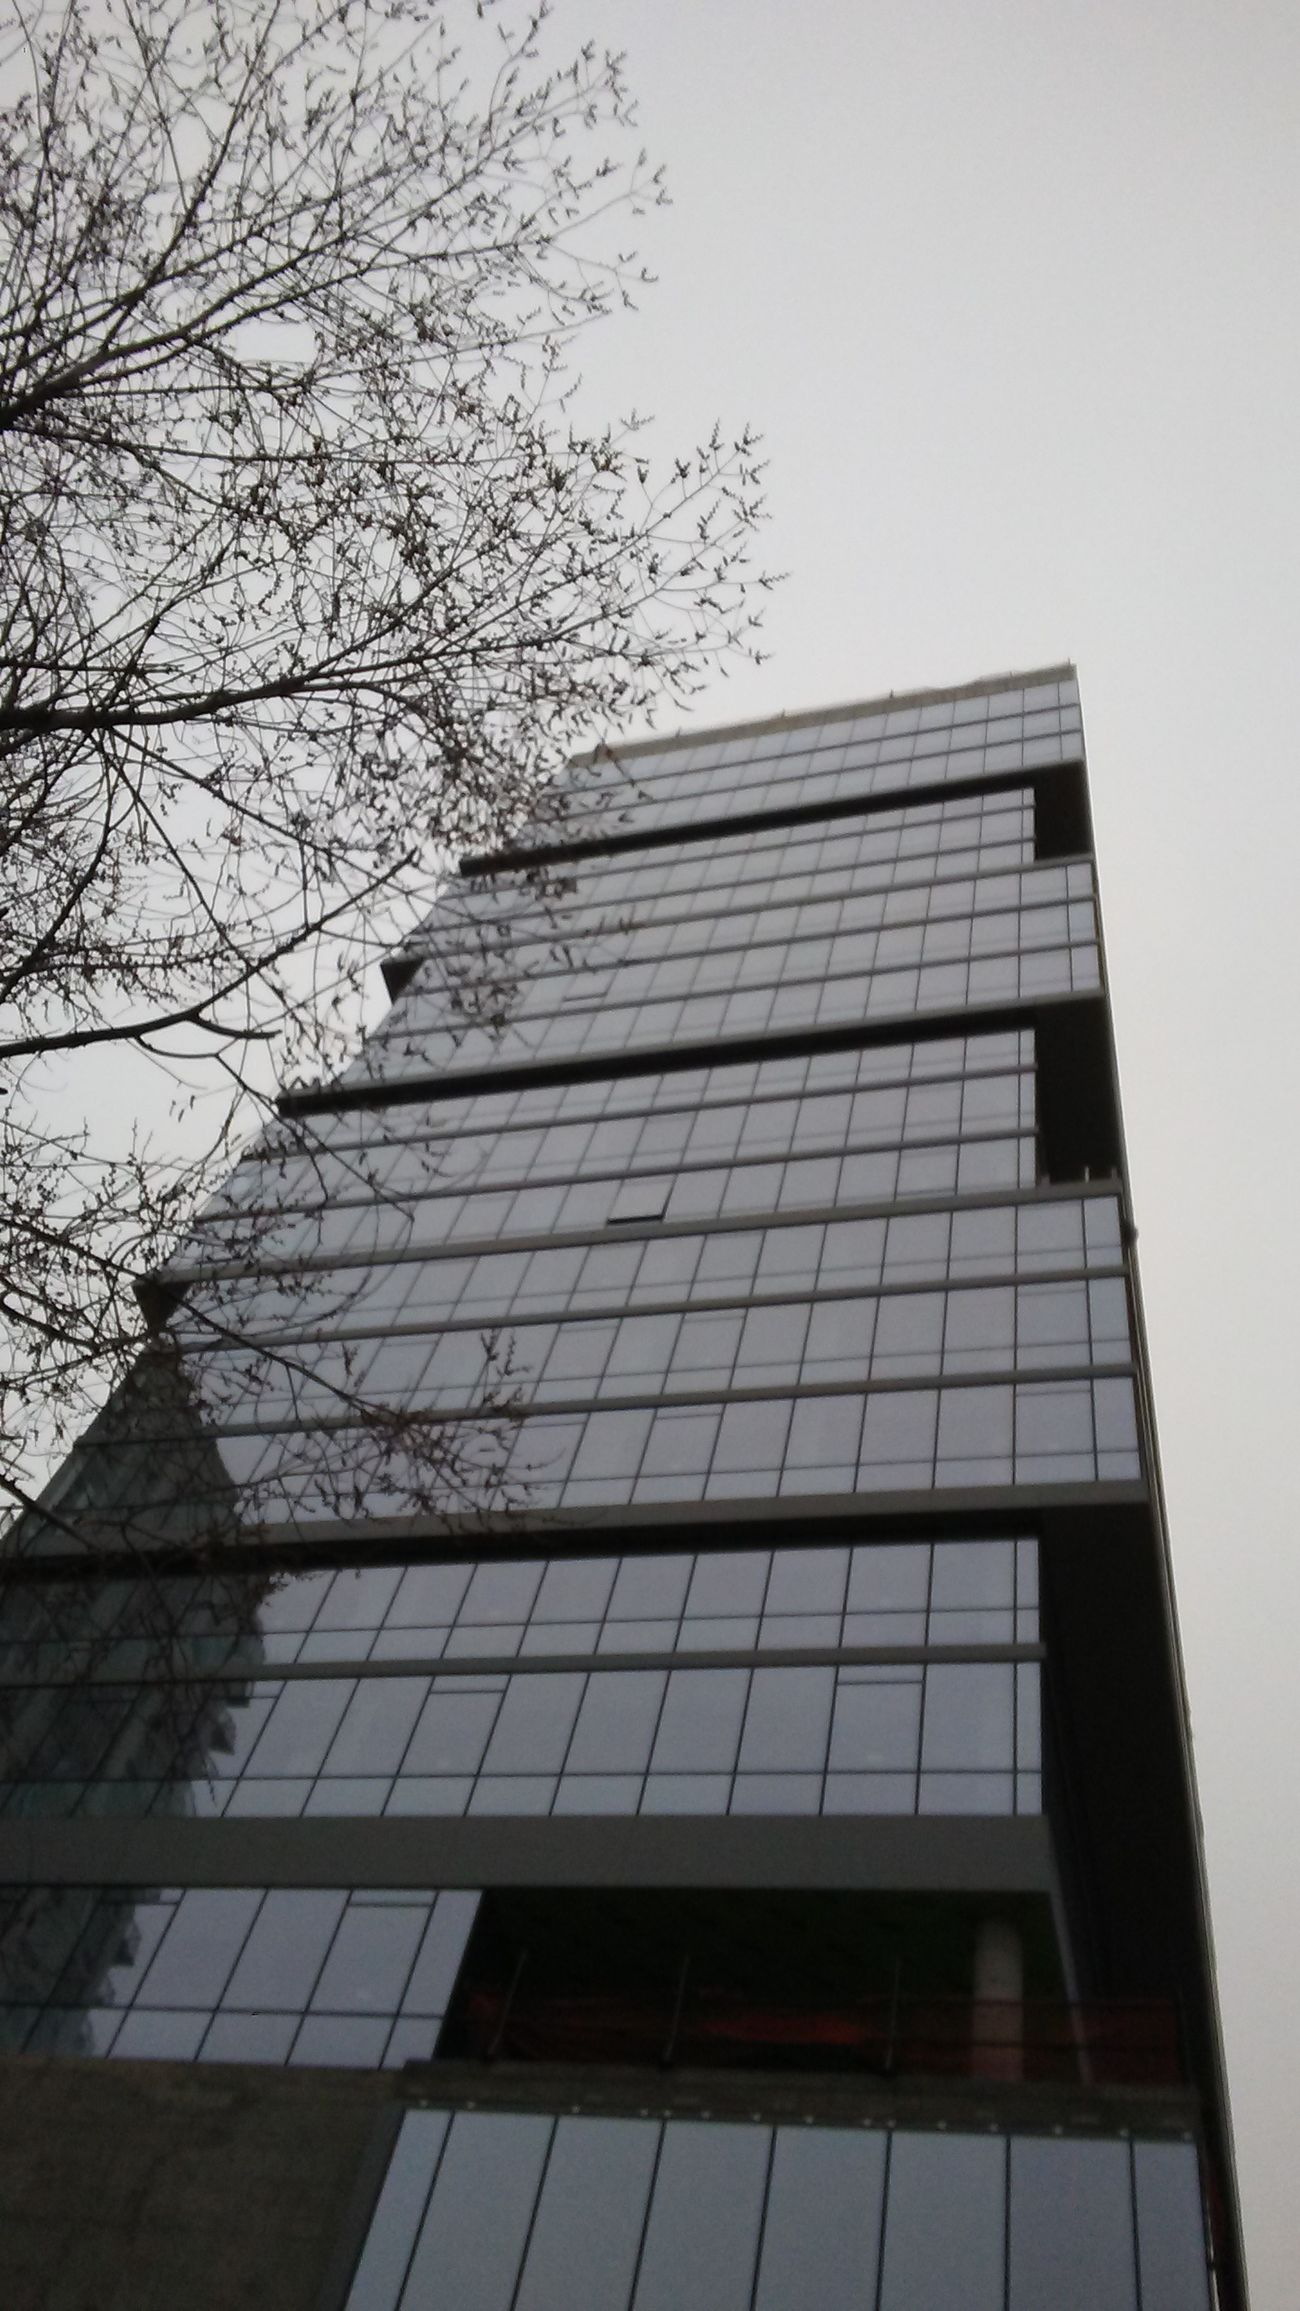 Architecture Building Exterior City Modern Built Structure No People Tree Skyscraper Low Angle View Outdoors Sky Reflection Tranquility Architecture Cluody_sky Glass - Material Glass Building